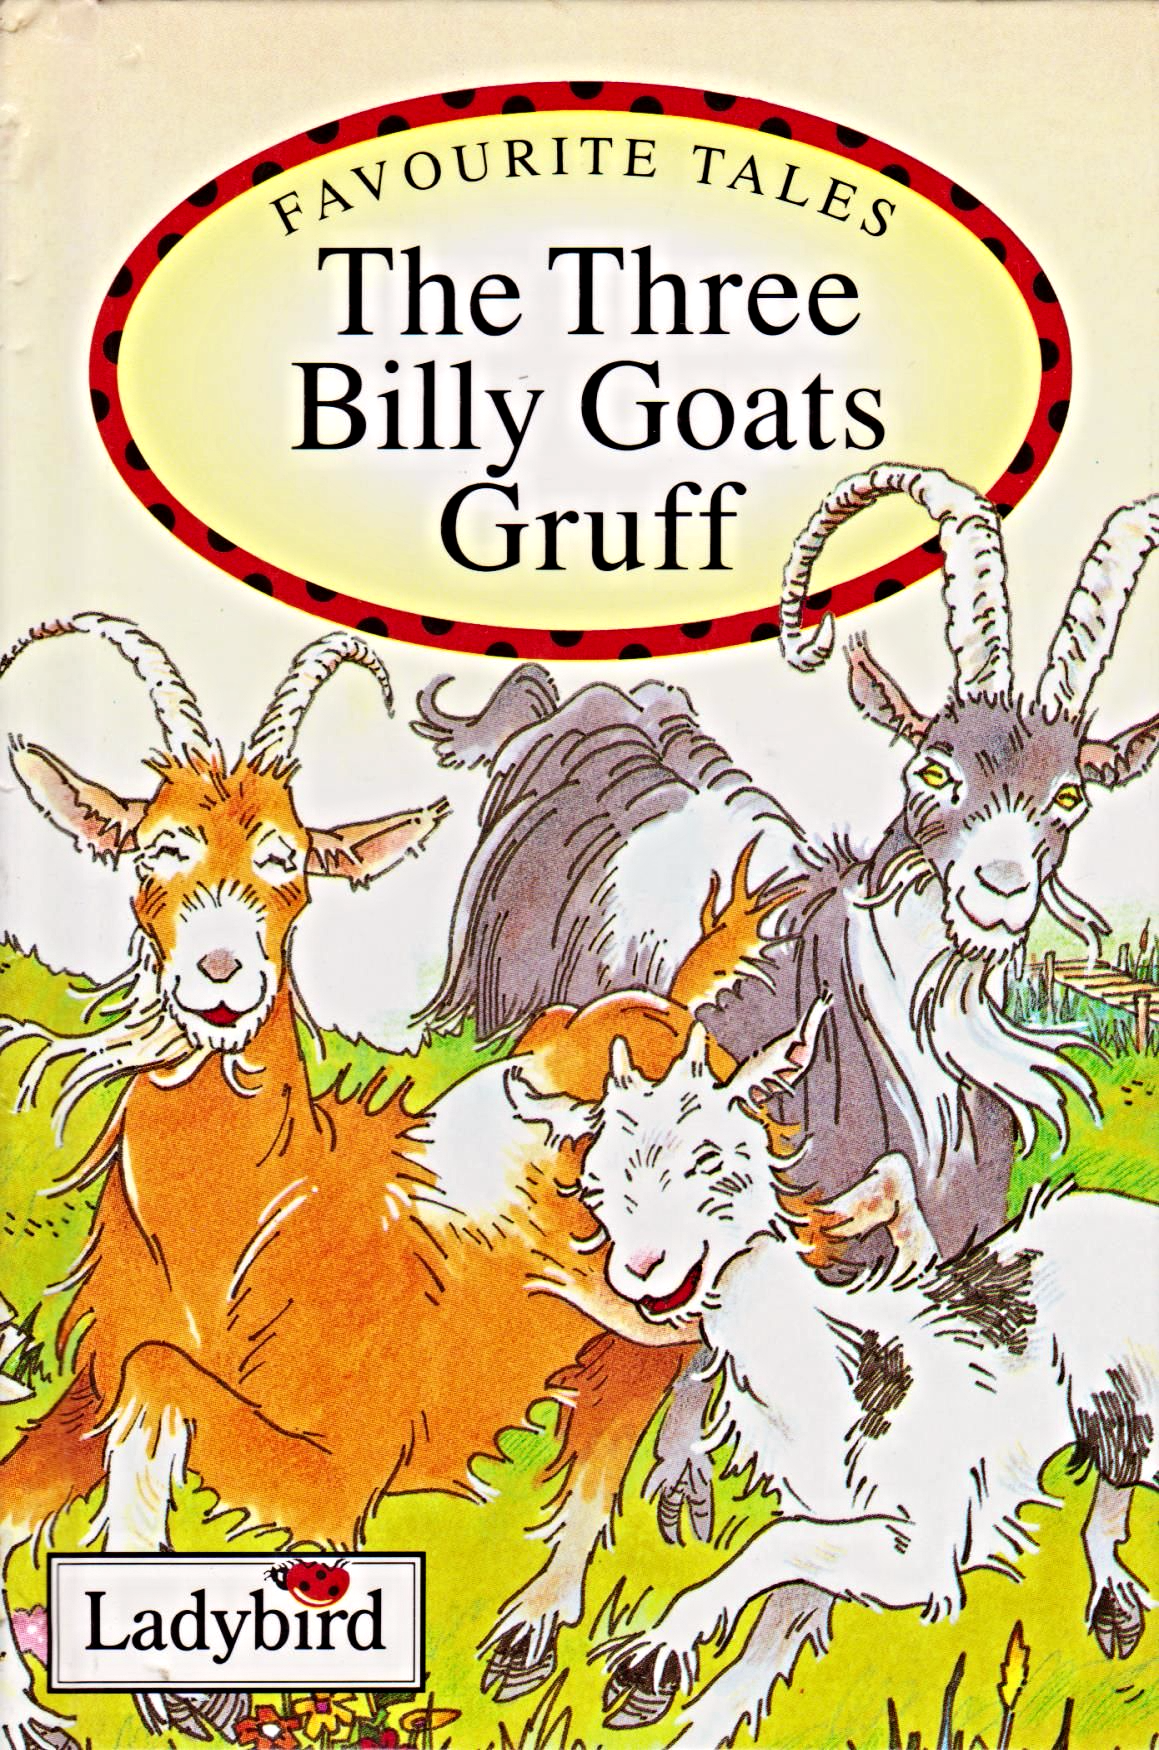 THREE BILLY GOATS GRUFF Ladybird Book Favourite Tales Gloss Hardback 1993 - Three Billy Goats Gruff PNG